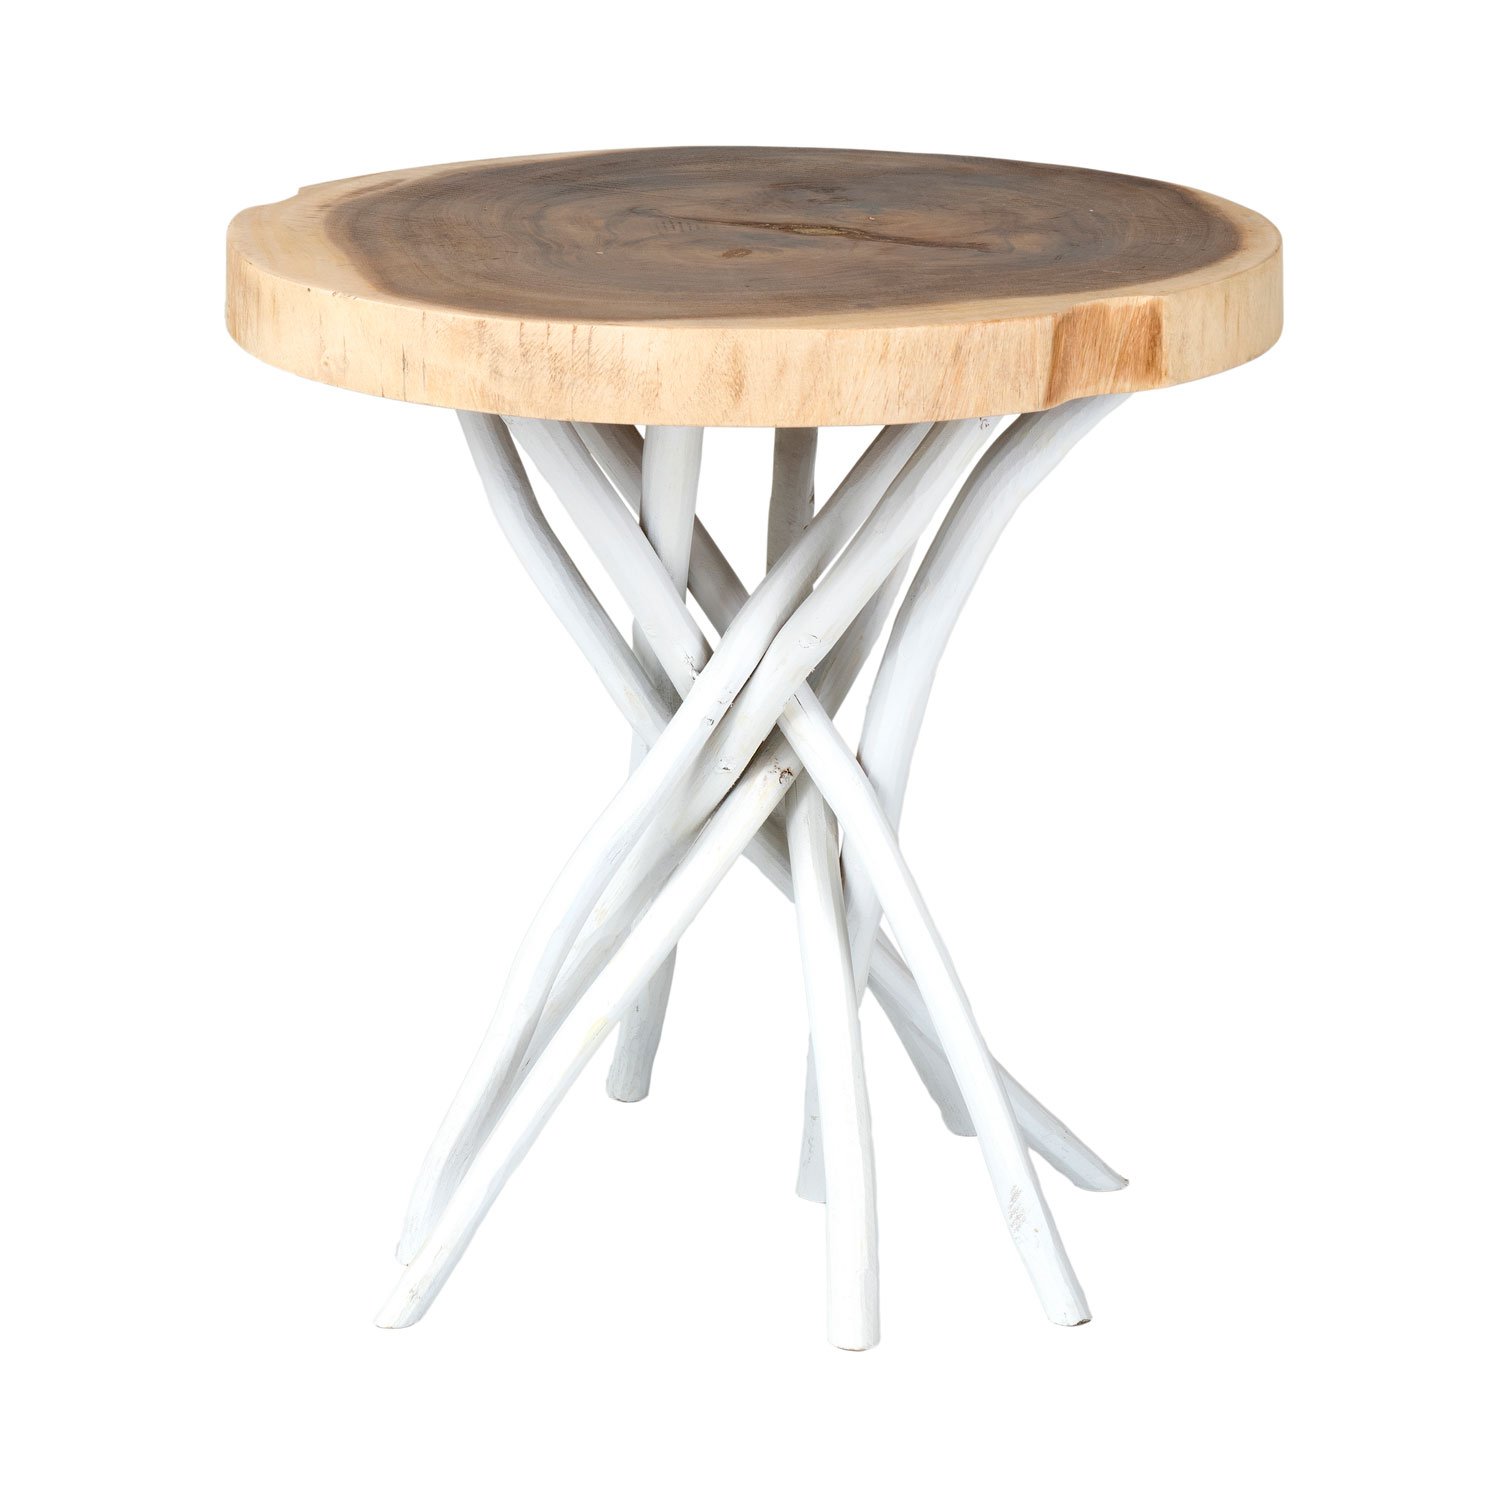 east main joeslin white teakwood round accent table teak wood hover zoom outdoor furniture patio side tables metal bar grey contemporary trestle dining pier room chairs sauder